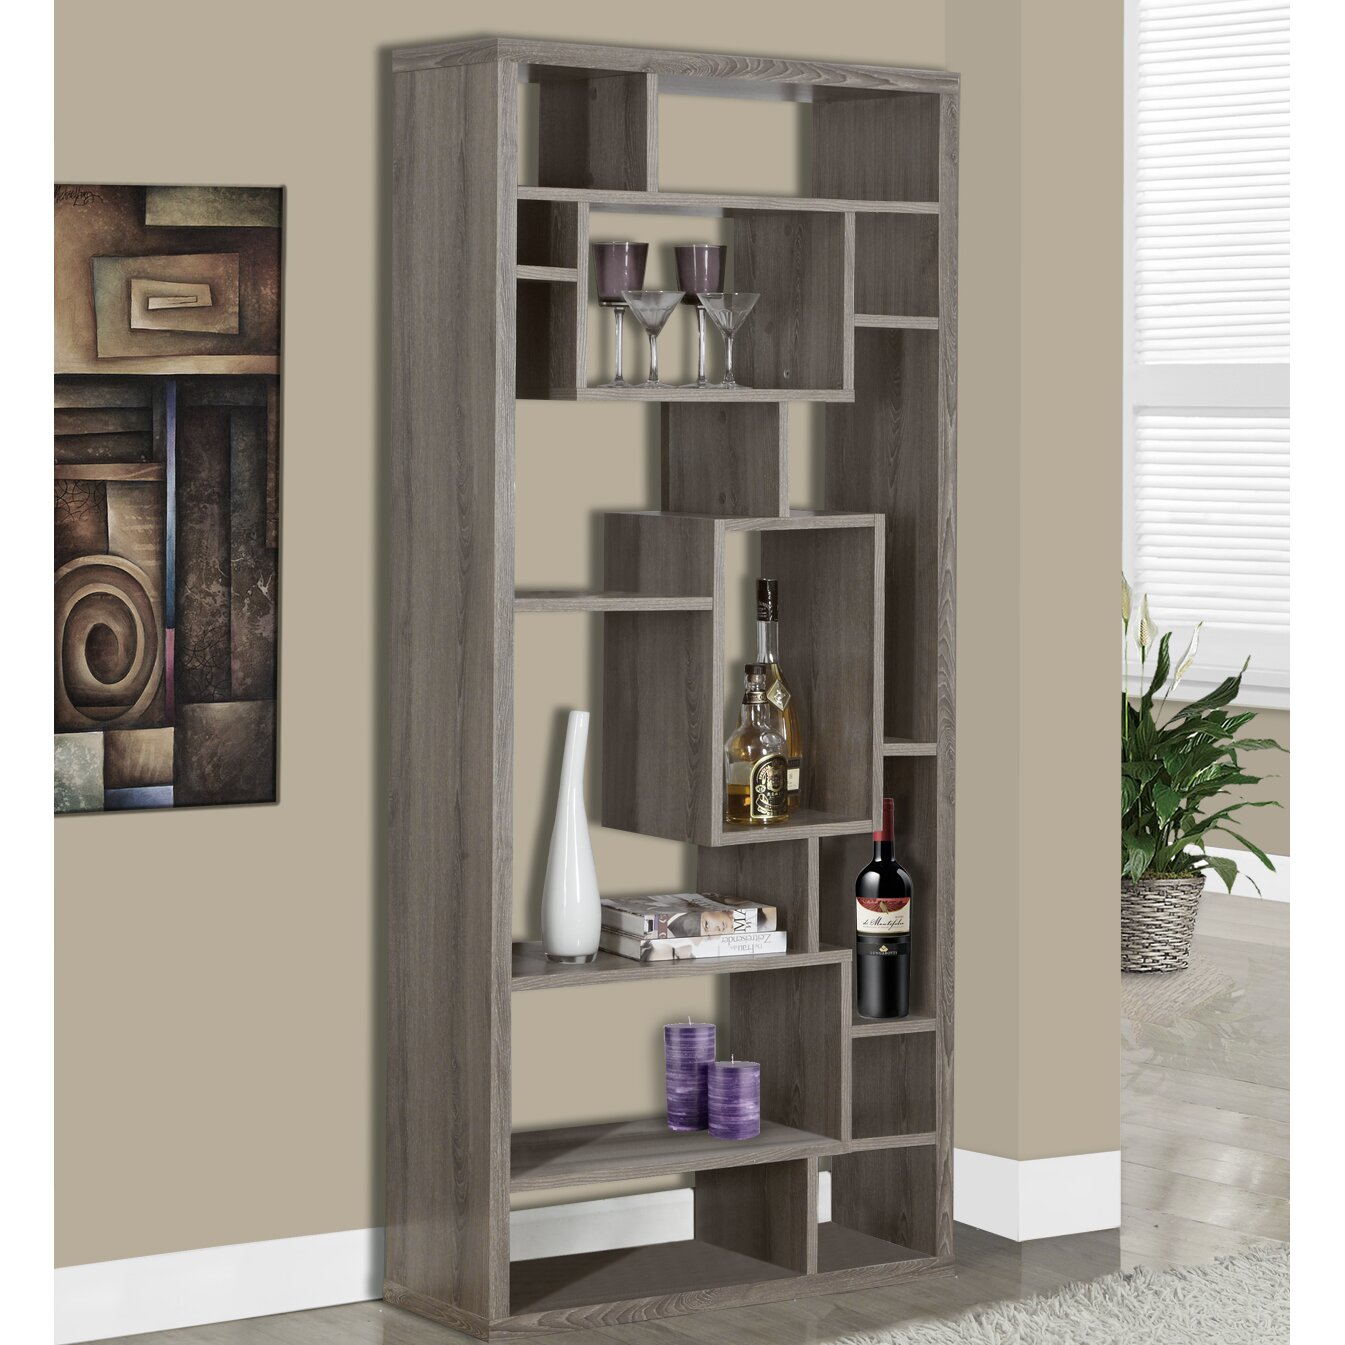 Monarch Specialties Inc 72 Cube Unit Bookcase